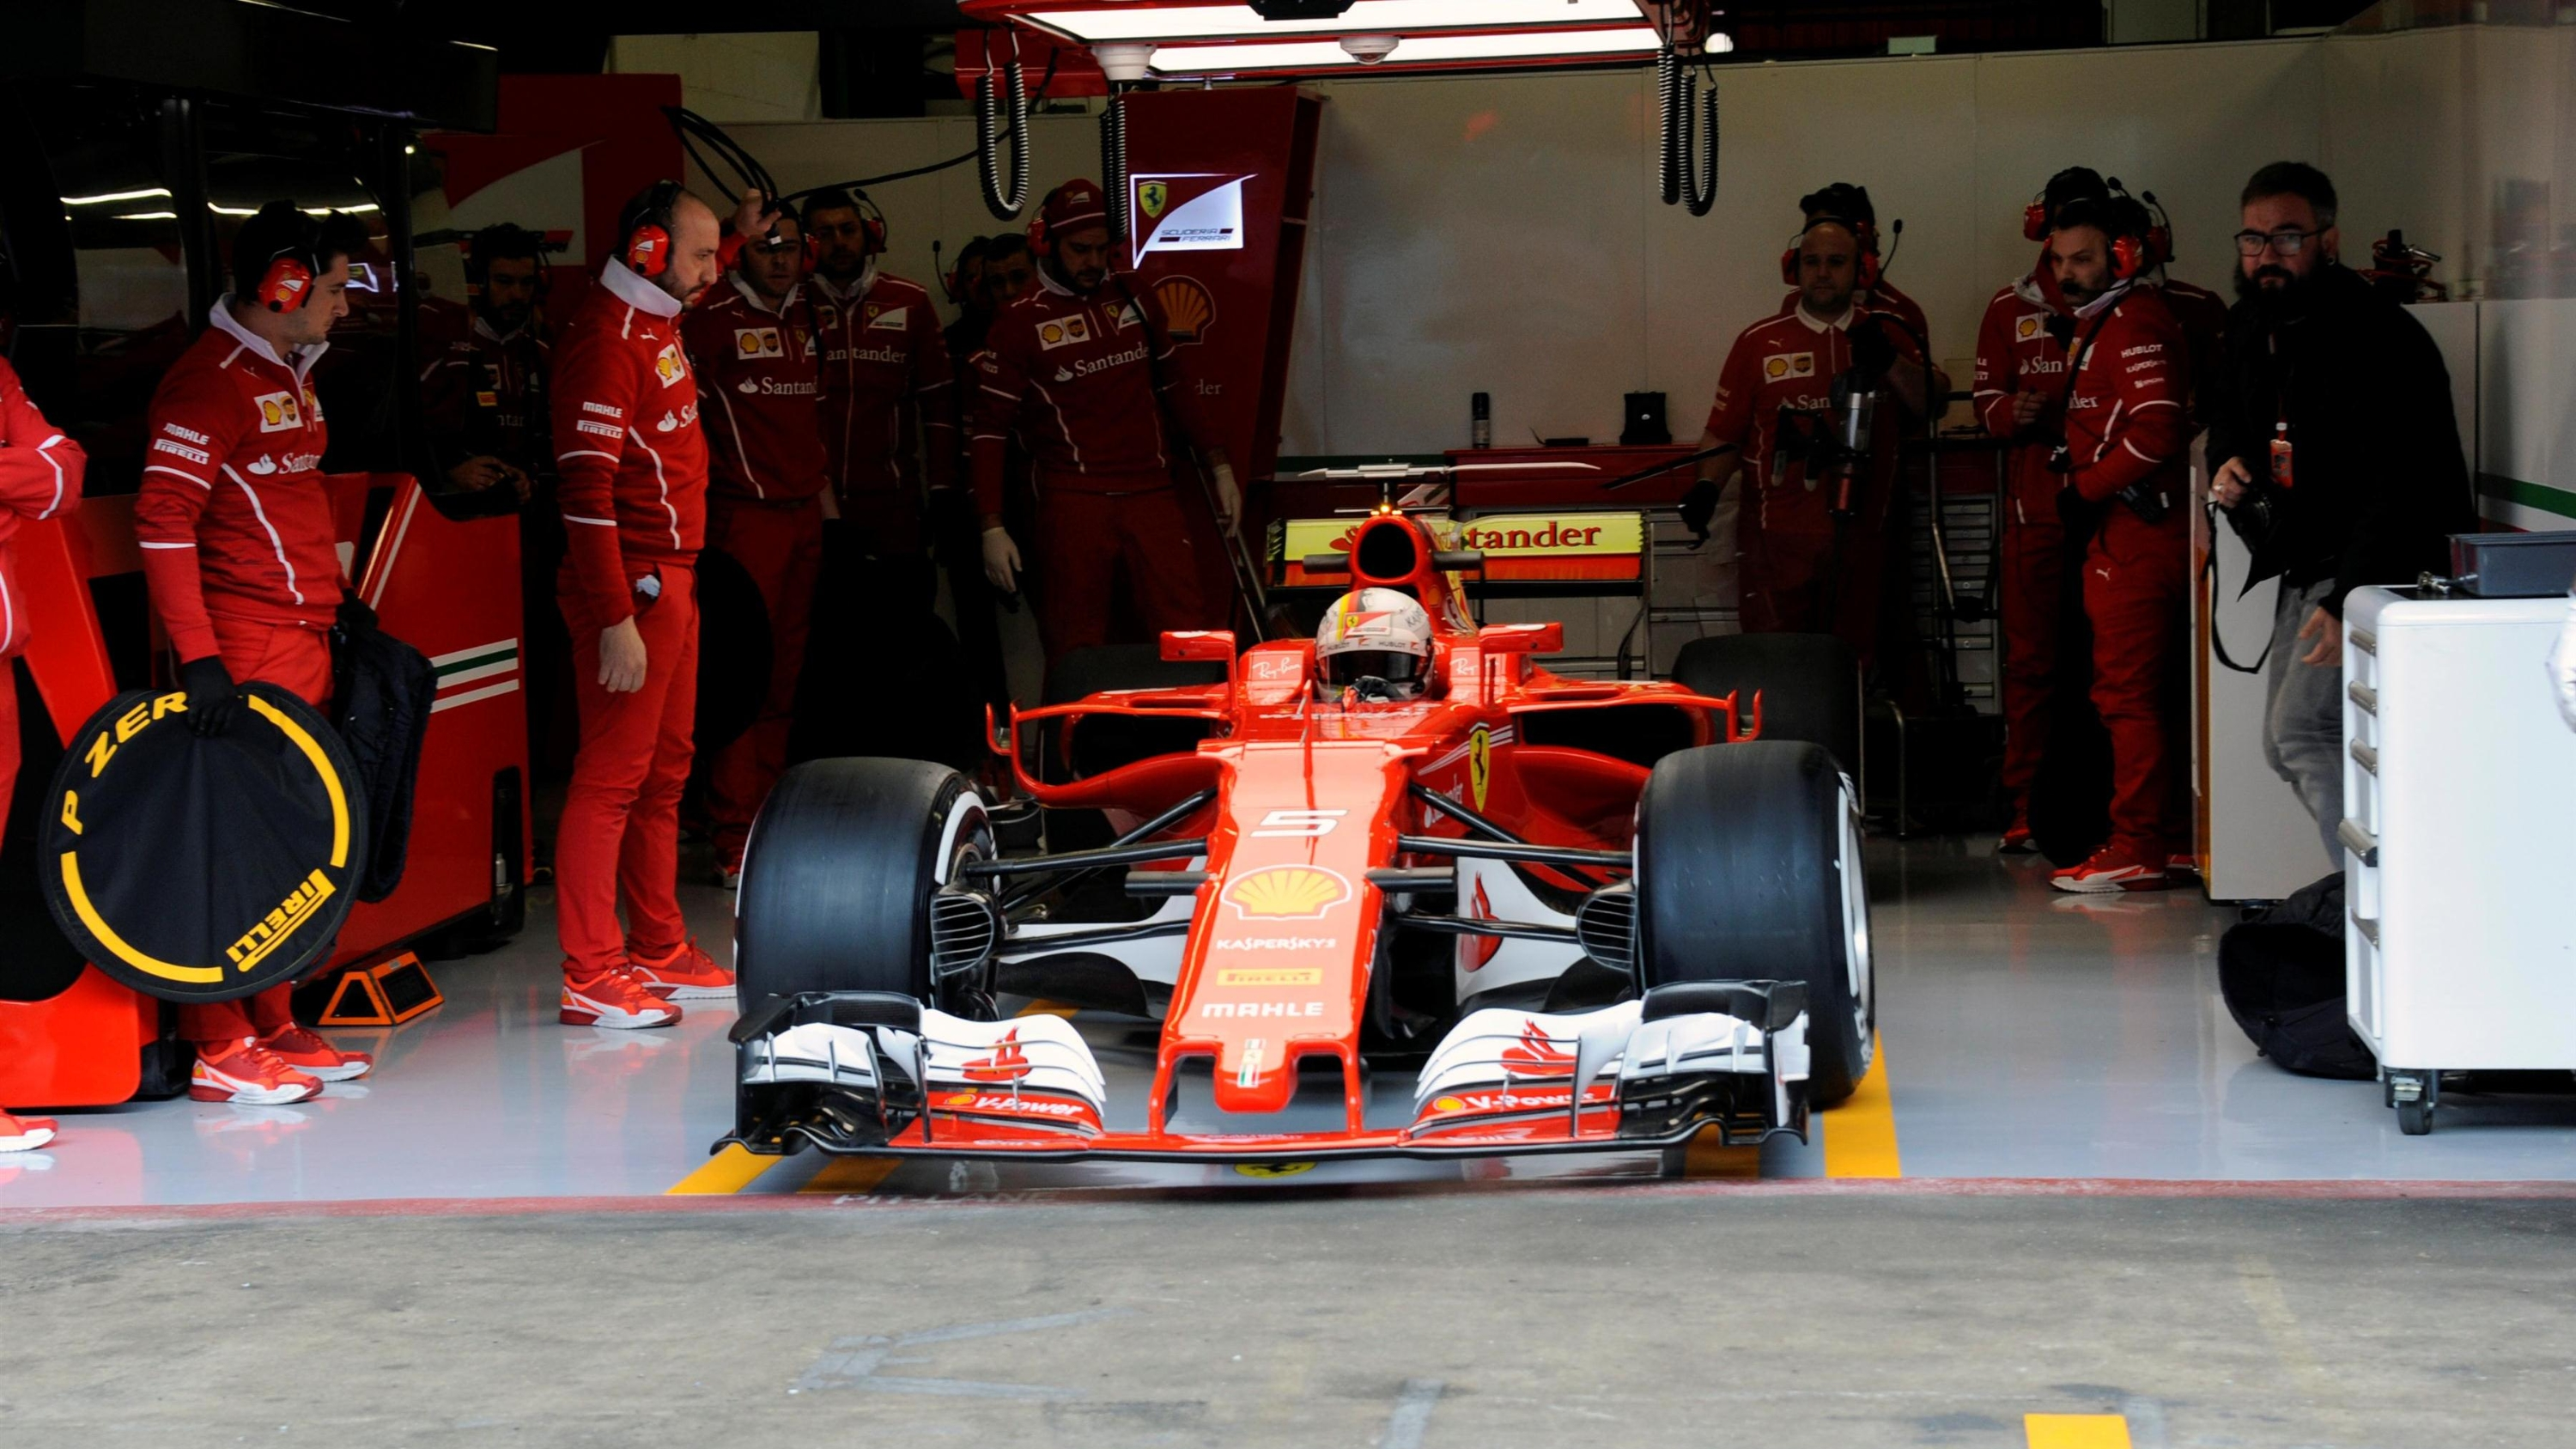 As it happened: Day 1 of 2017 testing from Spain